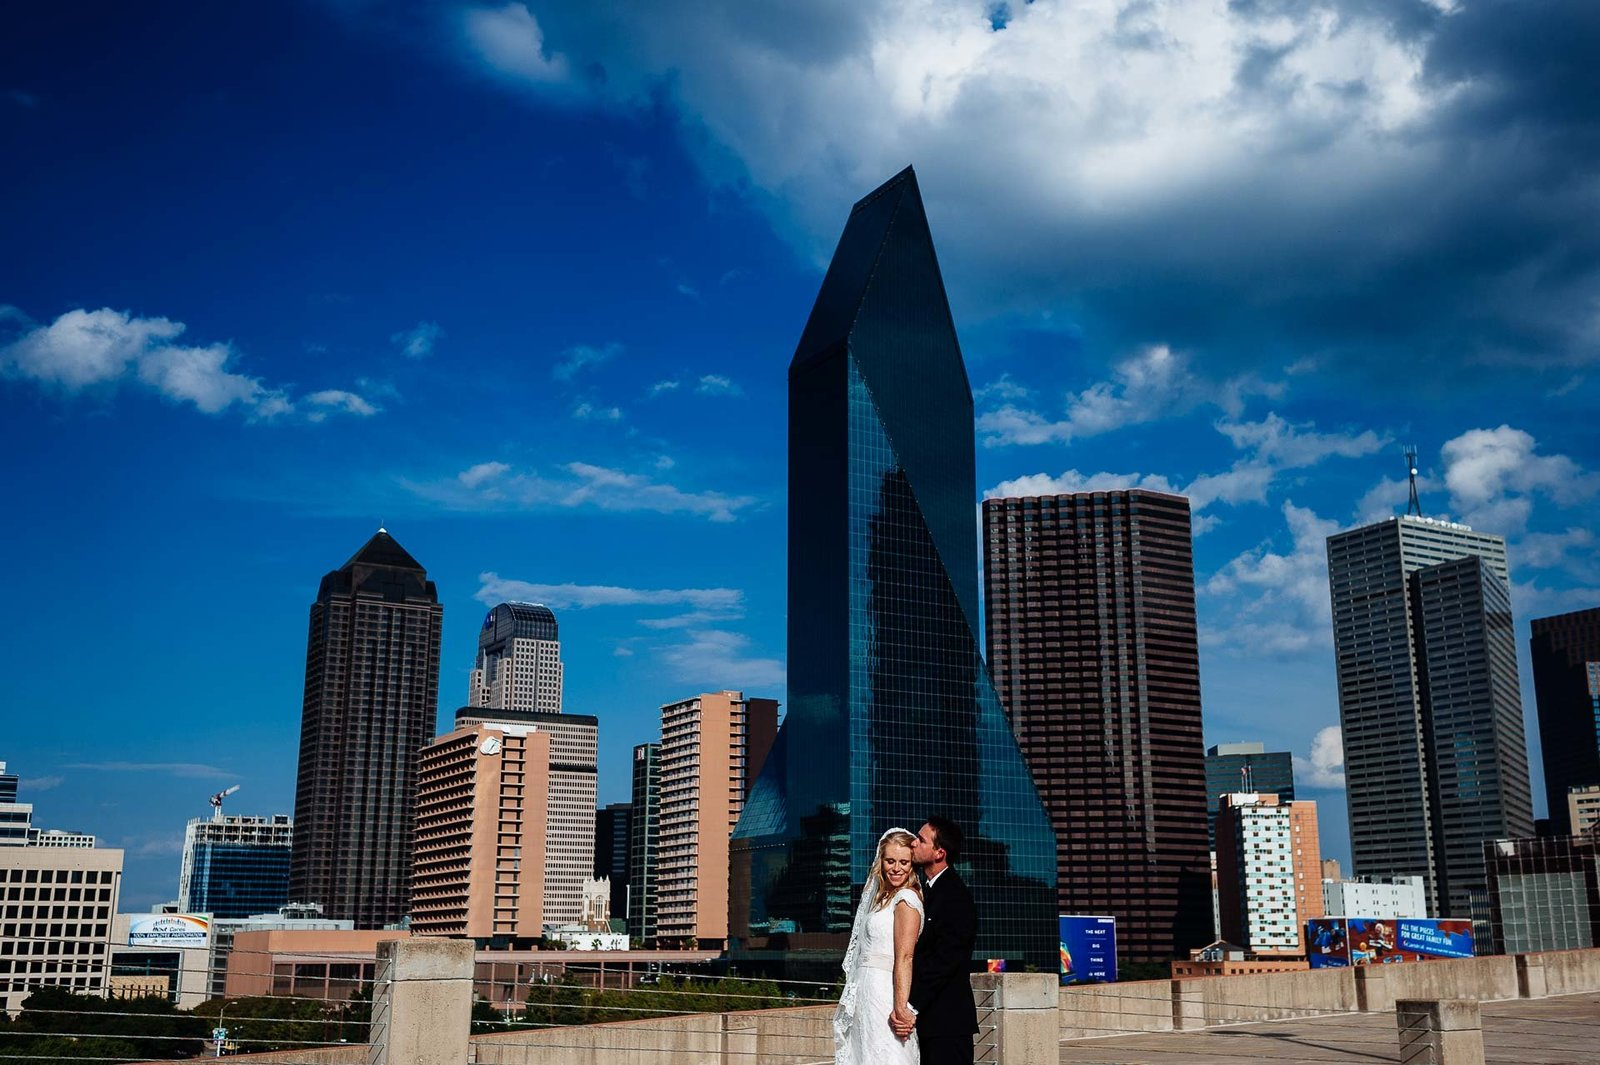 bride and groom in front of dallas skyline by dallas wedding photographer stephane lemaire